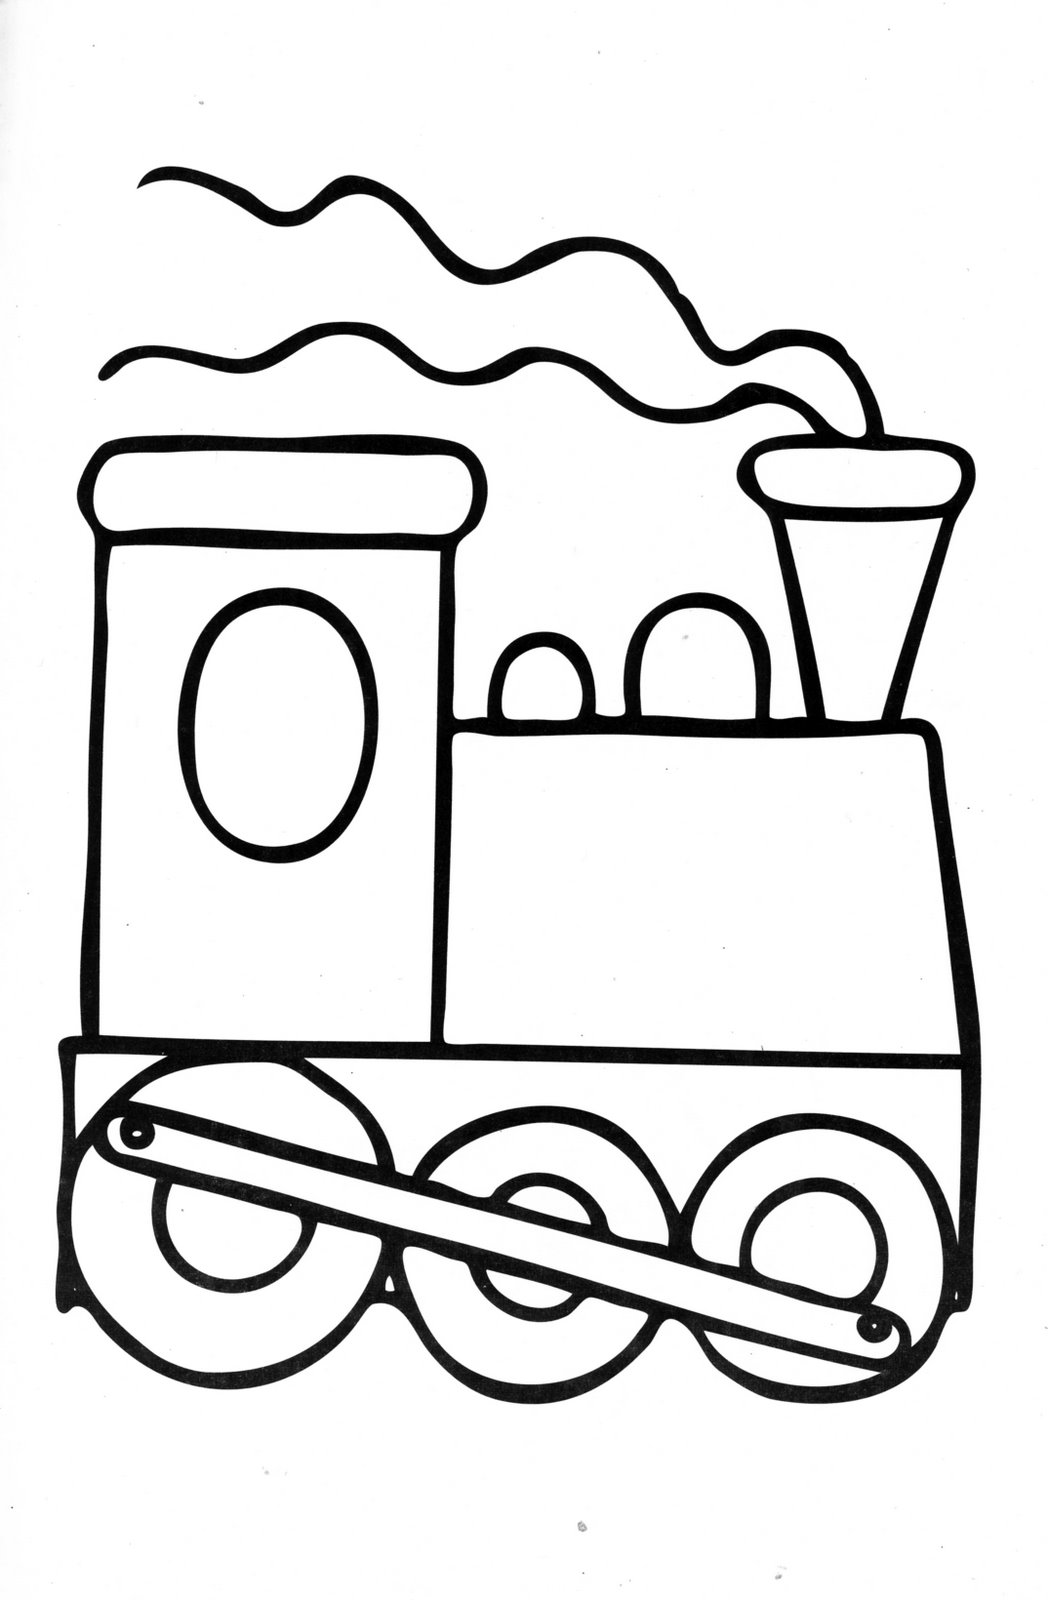 coloring train drawing pictures for kids coloring pages for kids trains coloring pages kids train coloring drawing for pictures